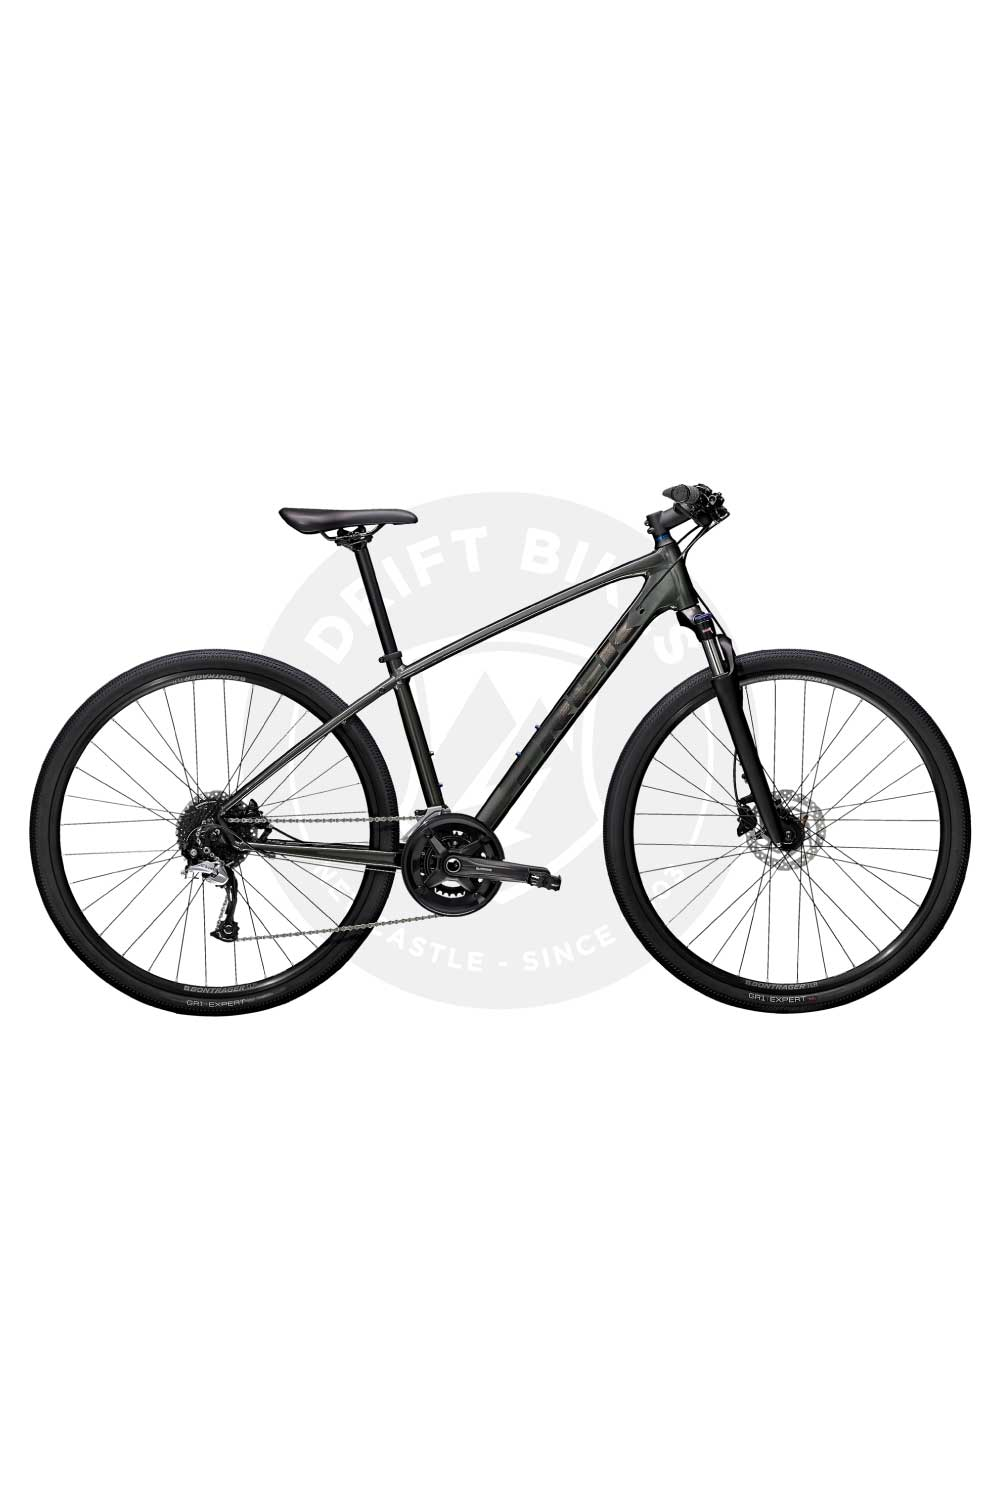 Trek 2021 Dual Sport 3 Fitness Bike